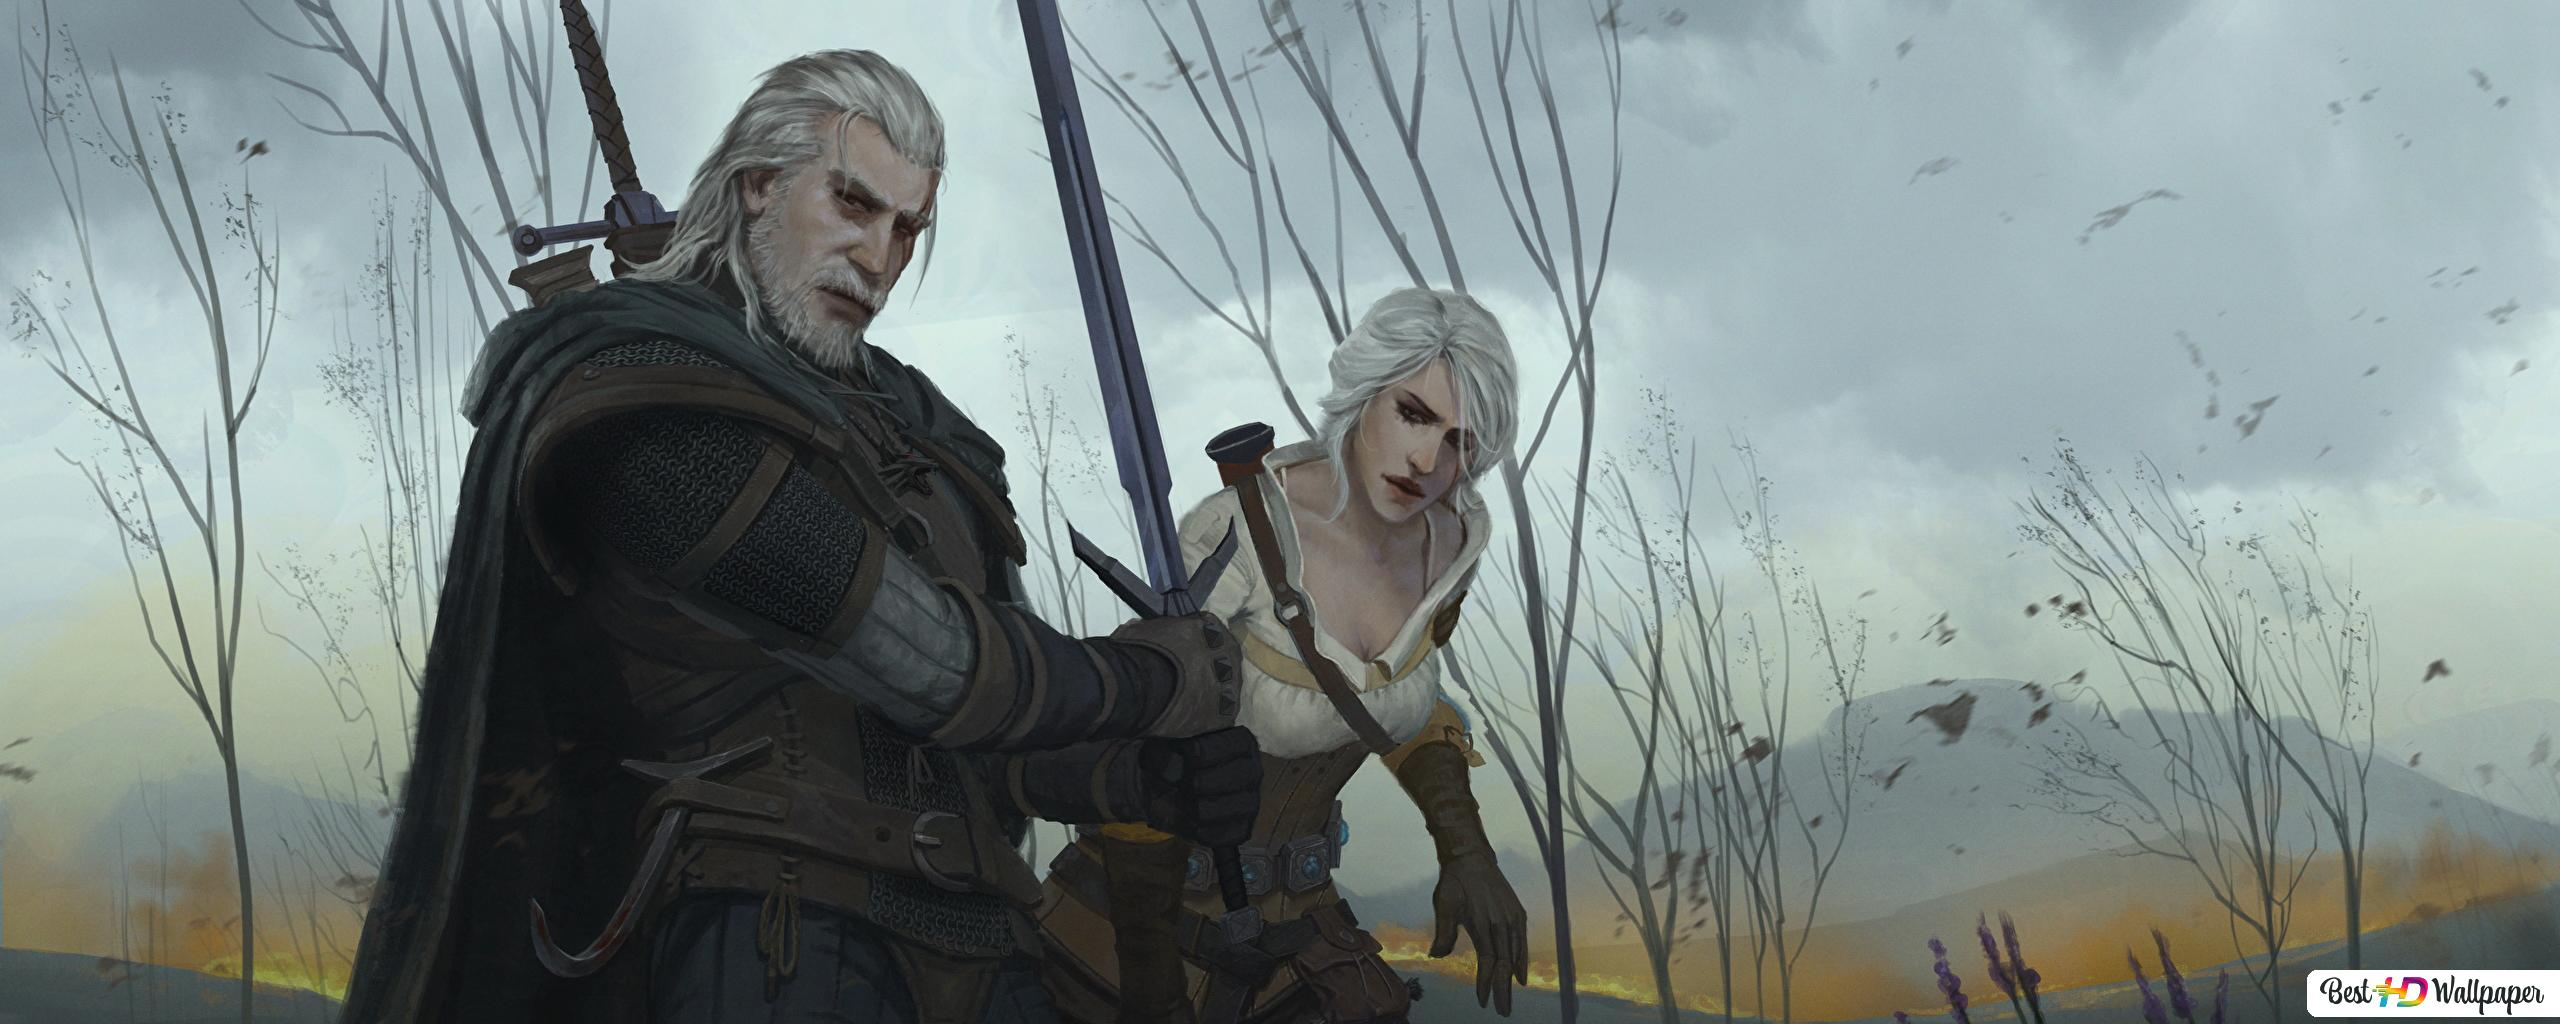 The Witcher 3 Wild Hunt Cirilla And Geralt Of Rivia Hd